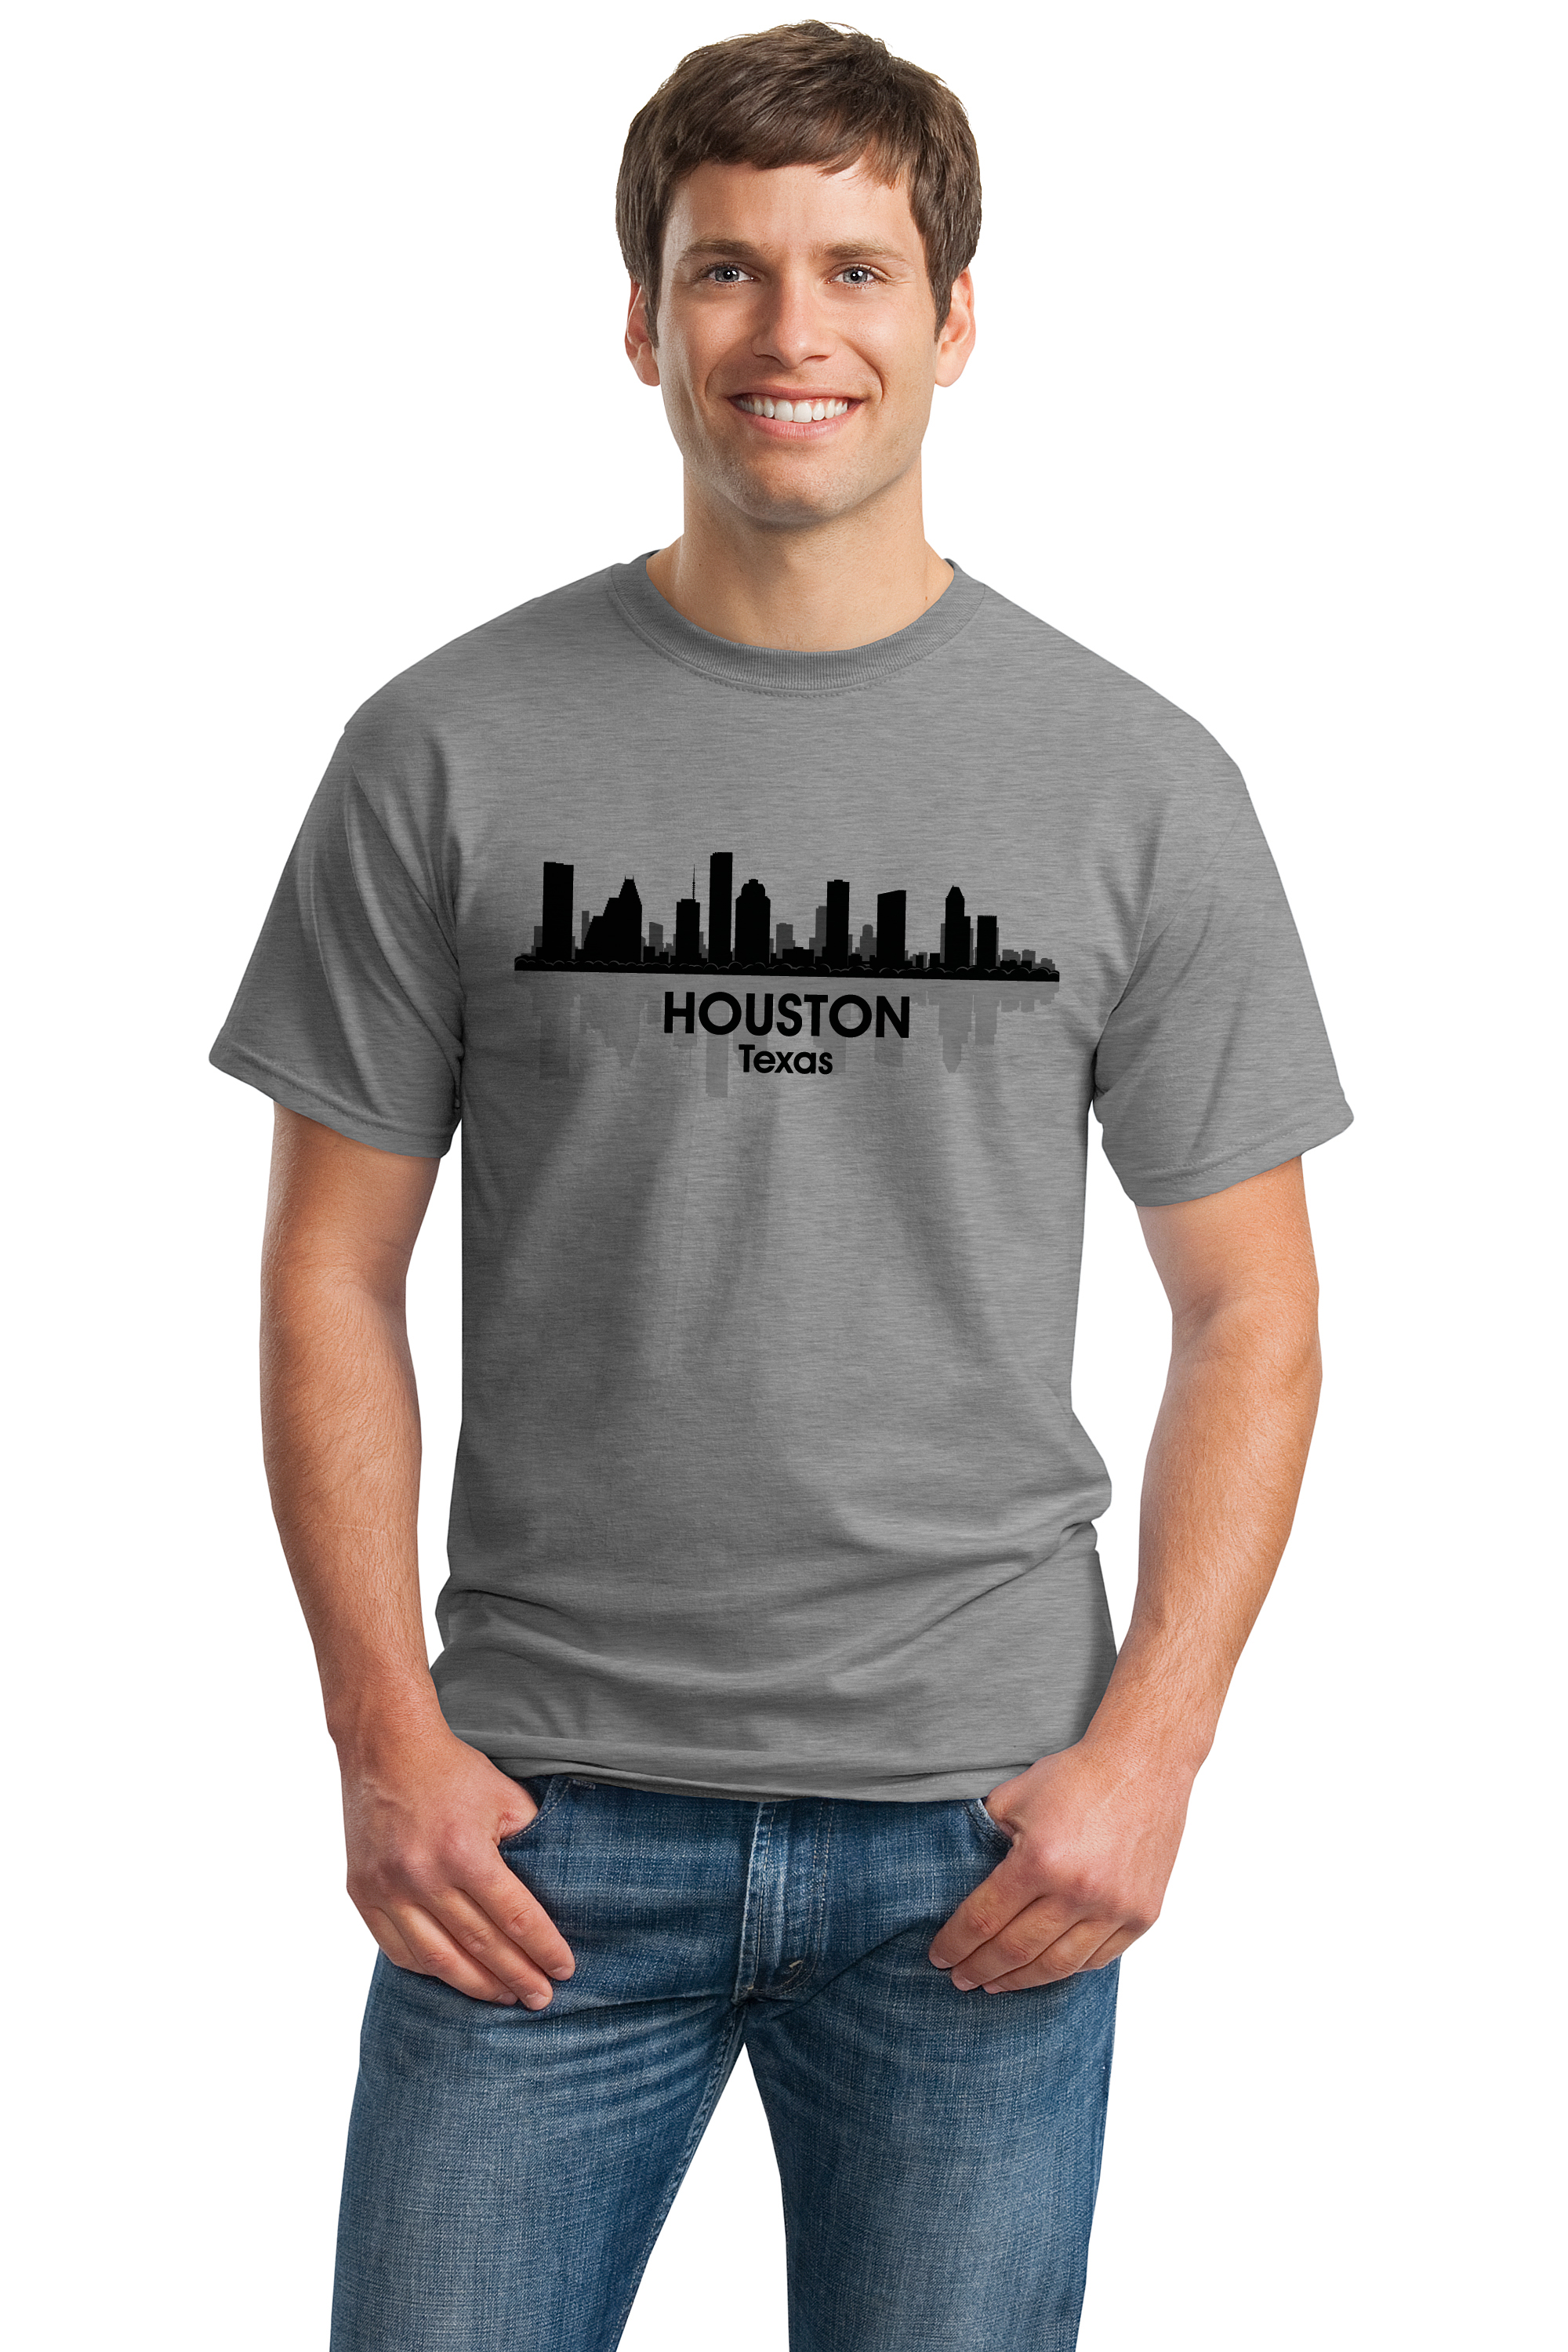 Indianapolis In City Skyline Adult Unisex T Shirt Indy